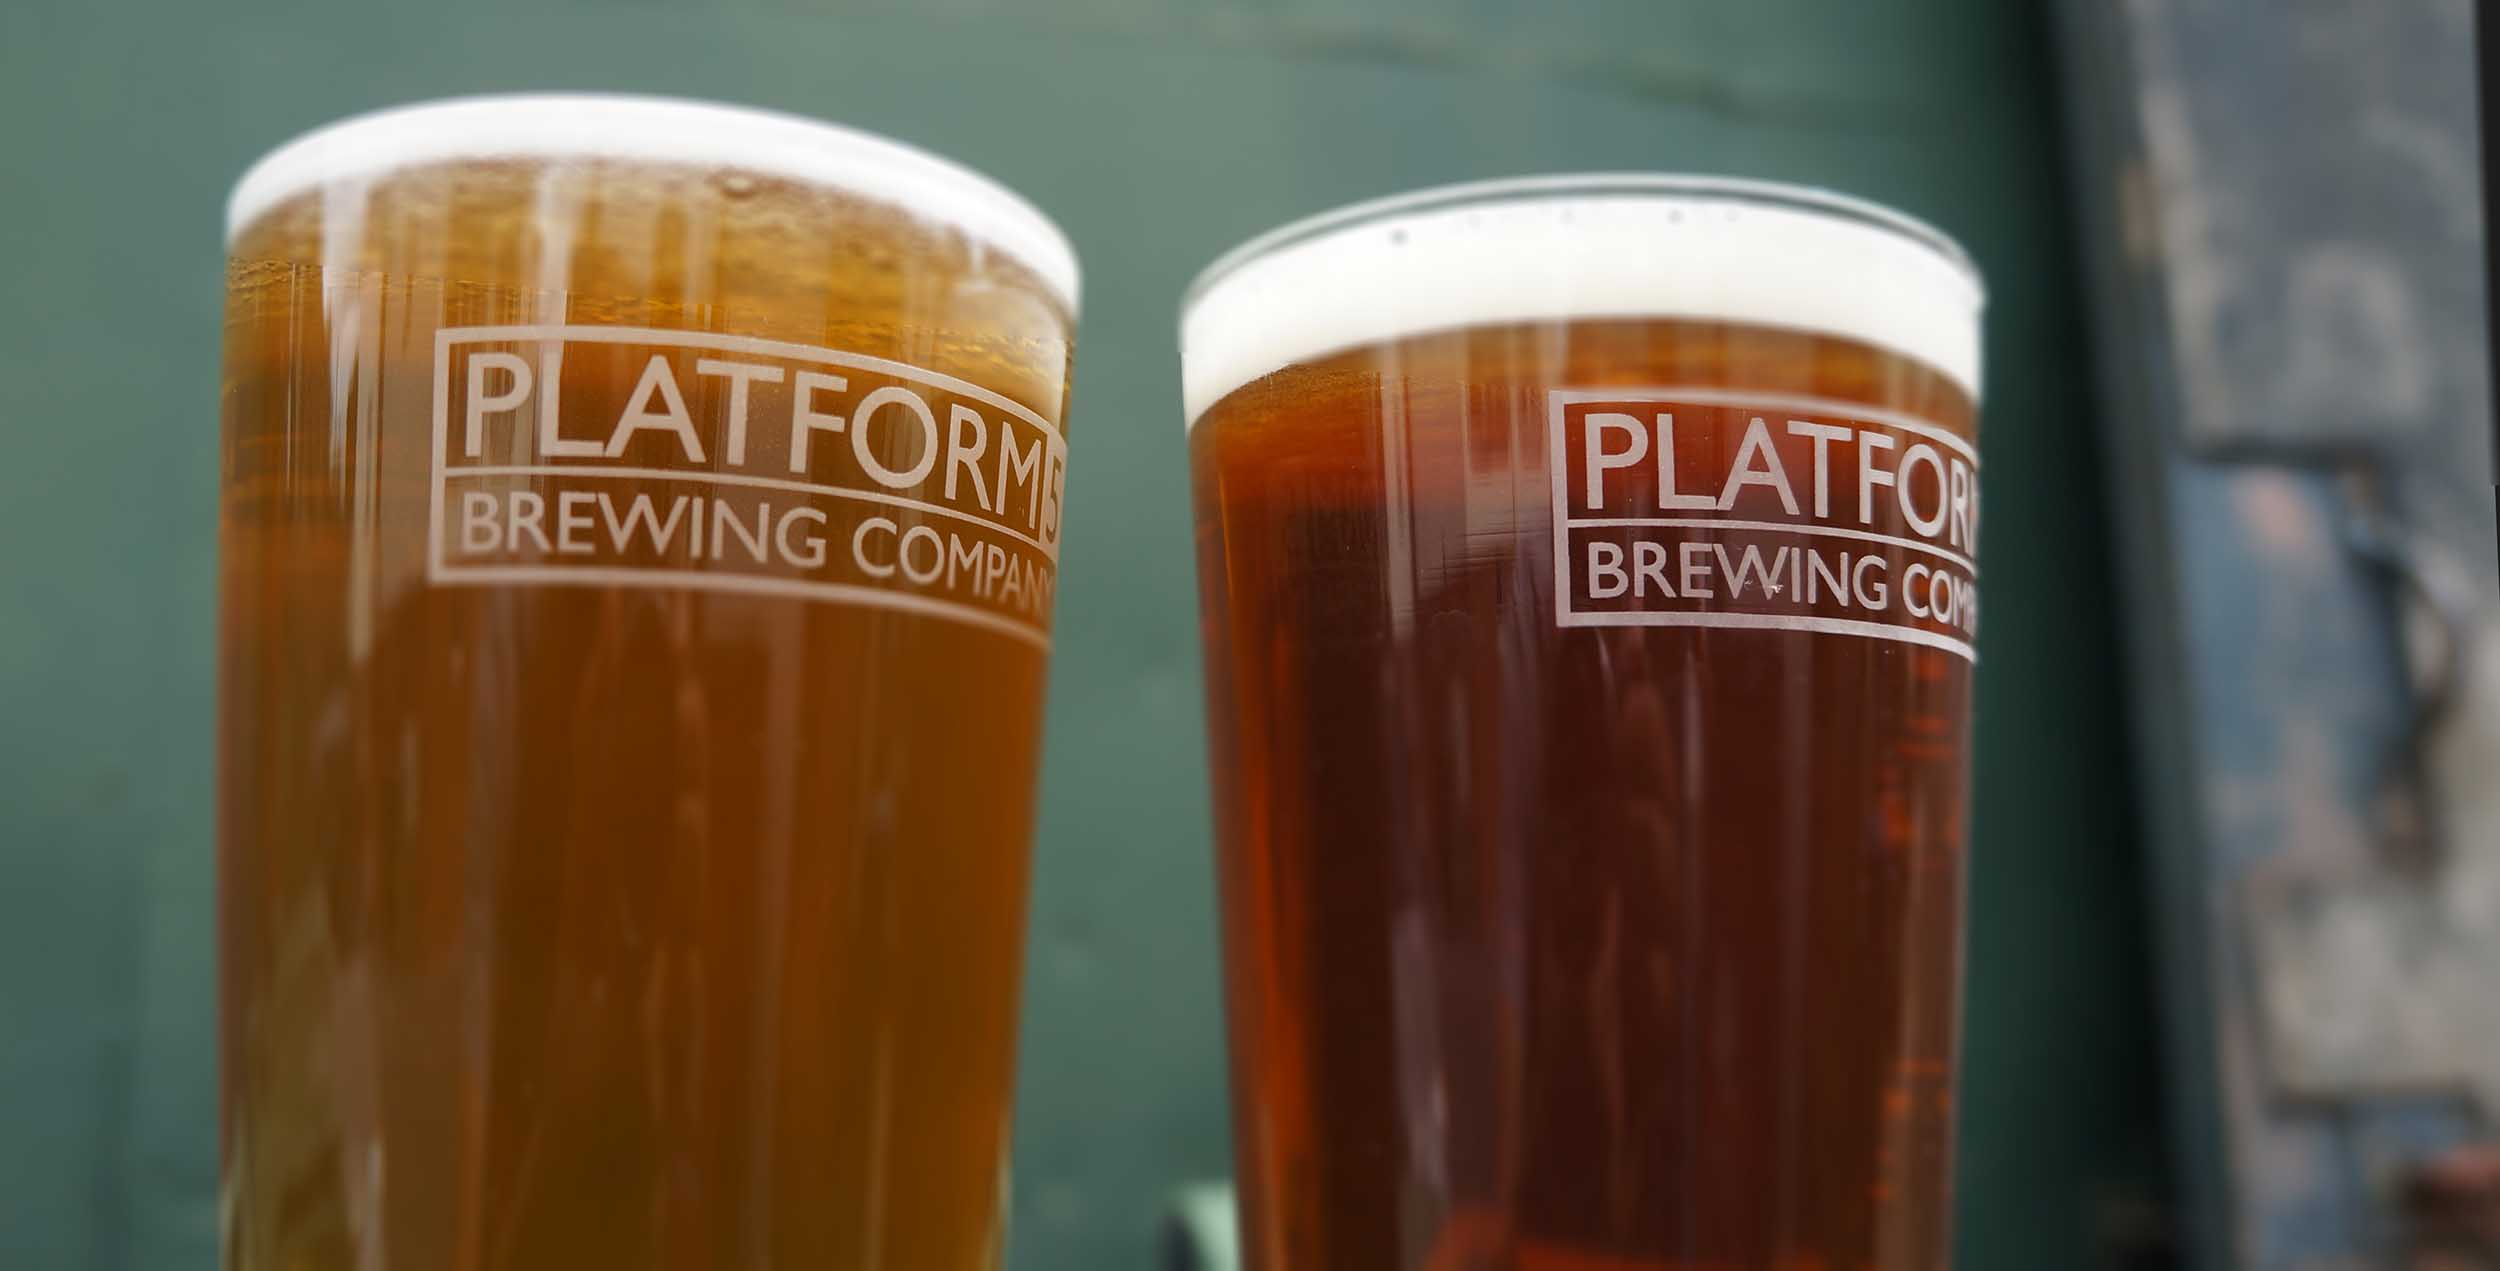 platform 5 brewing company, devon